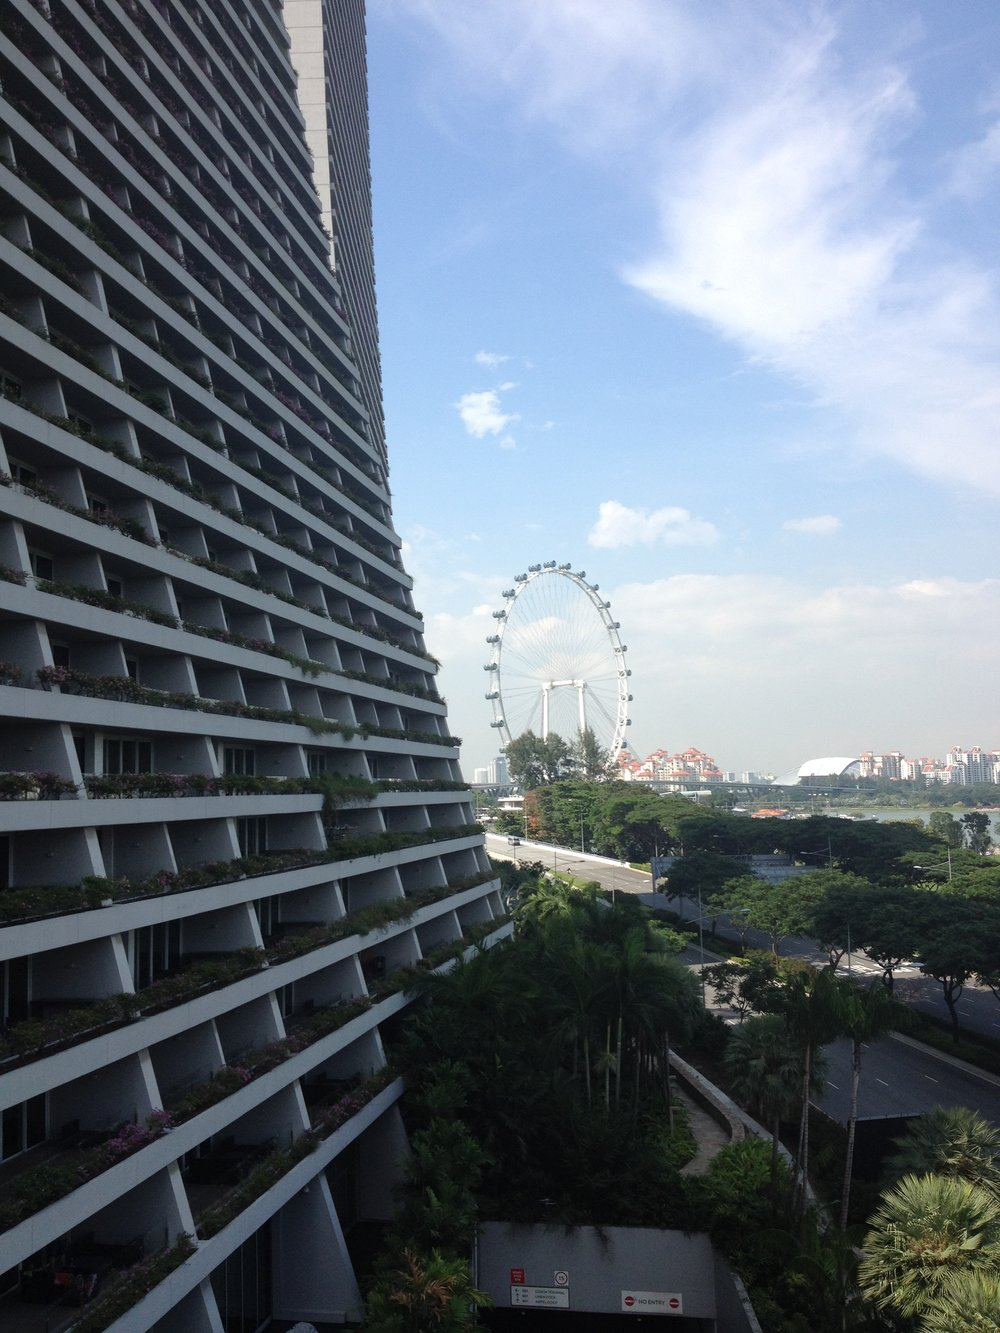 Marina Bay Sands Hotel to Gardens by the Bay